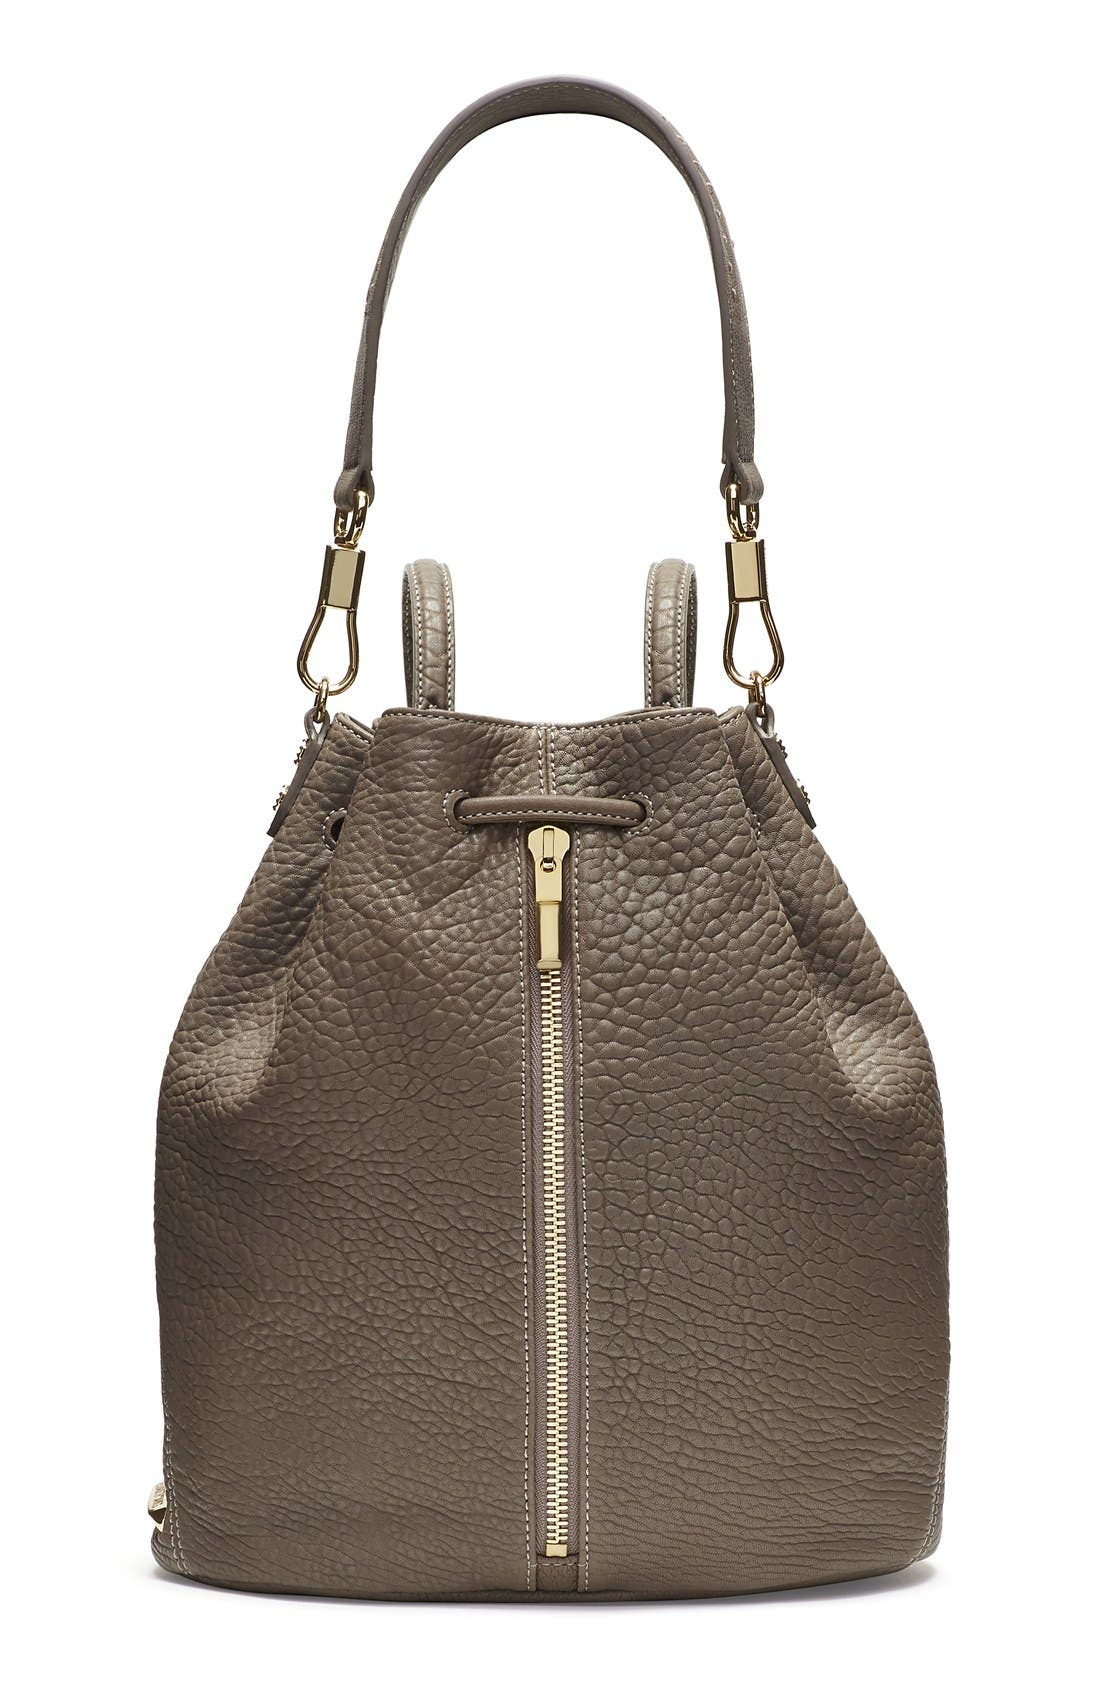 Main Image - Elizabeth and James 'Cynnie' Leather Sling Backpack